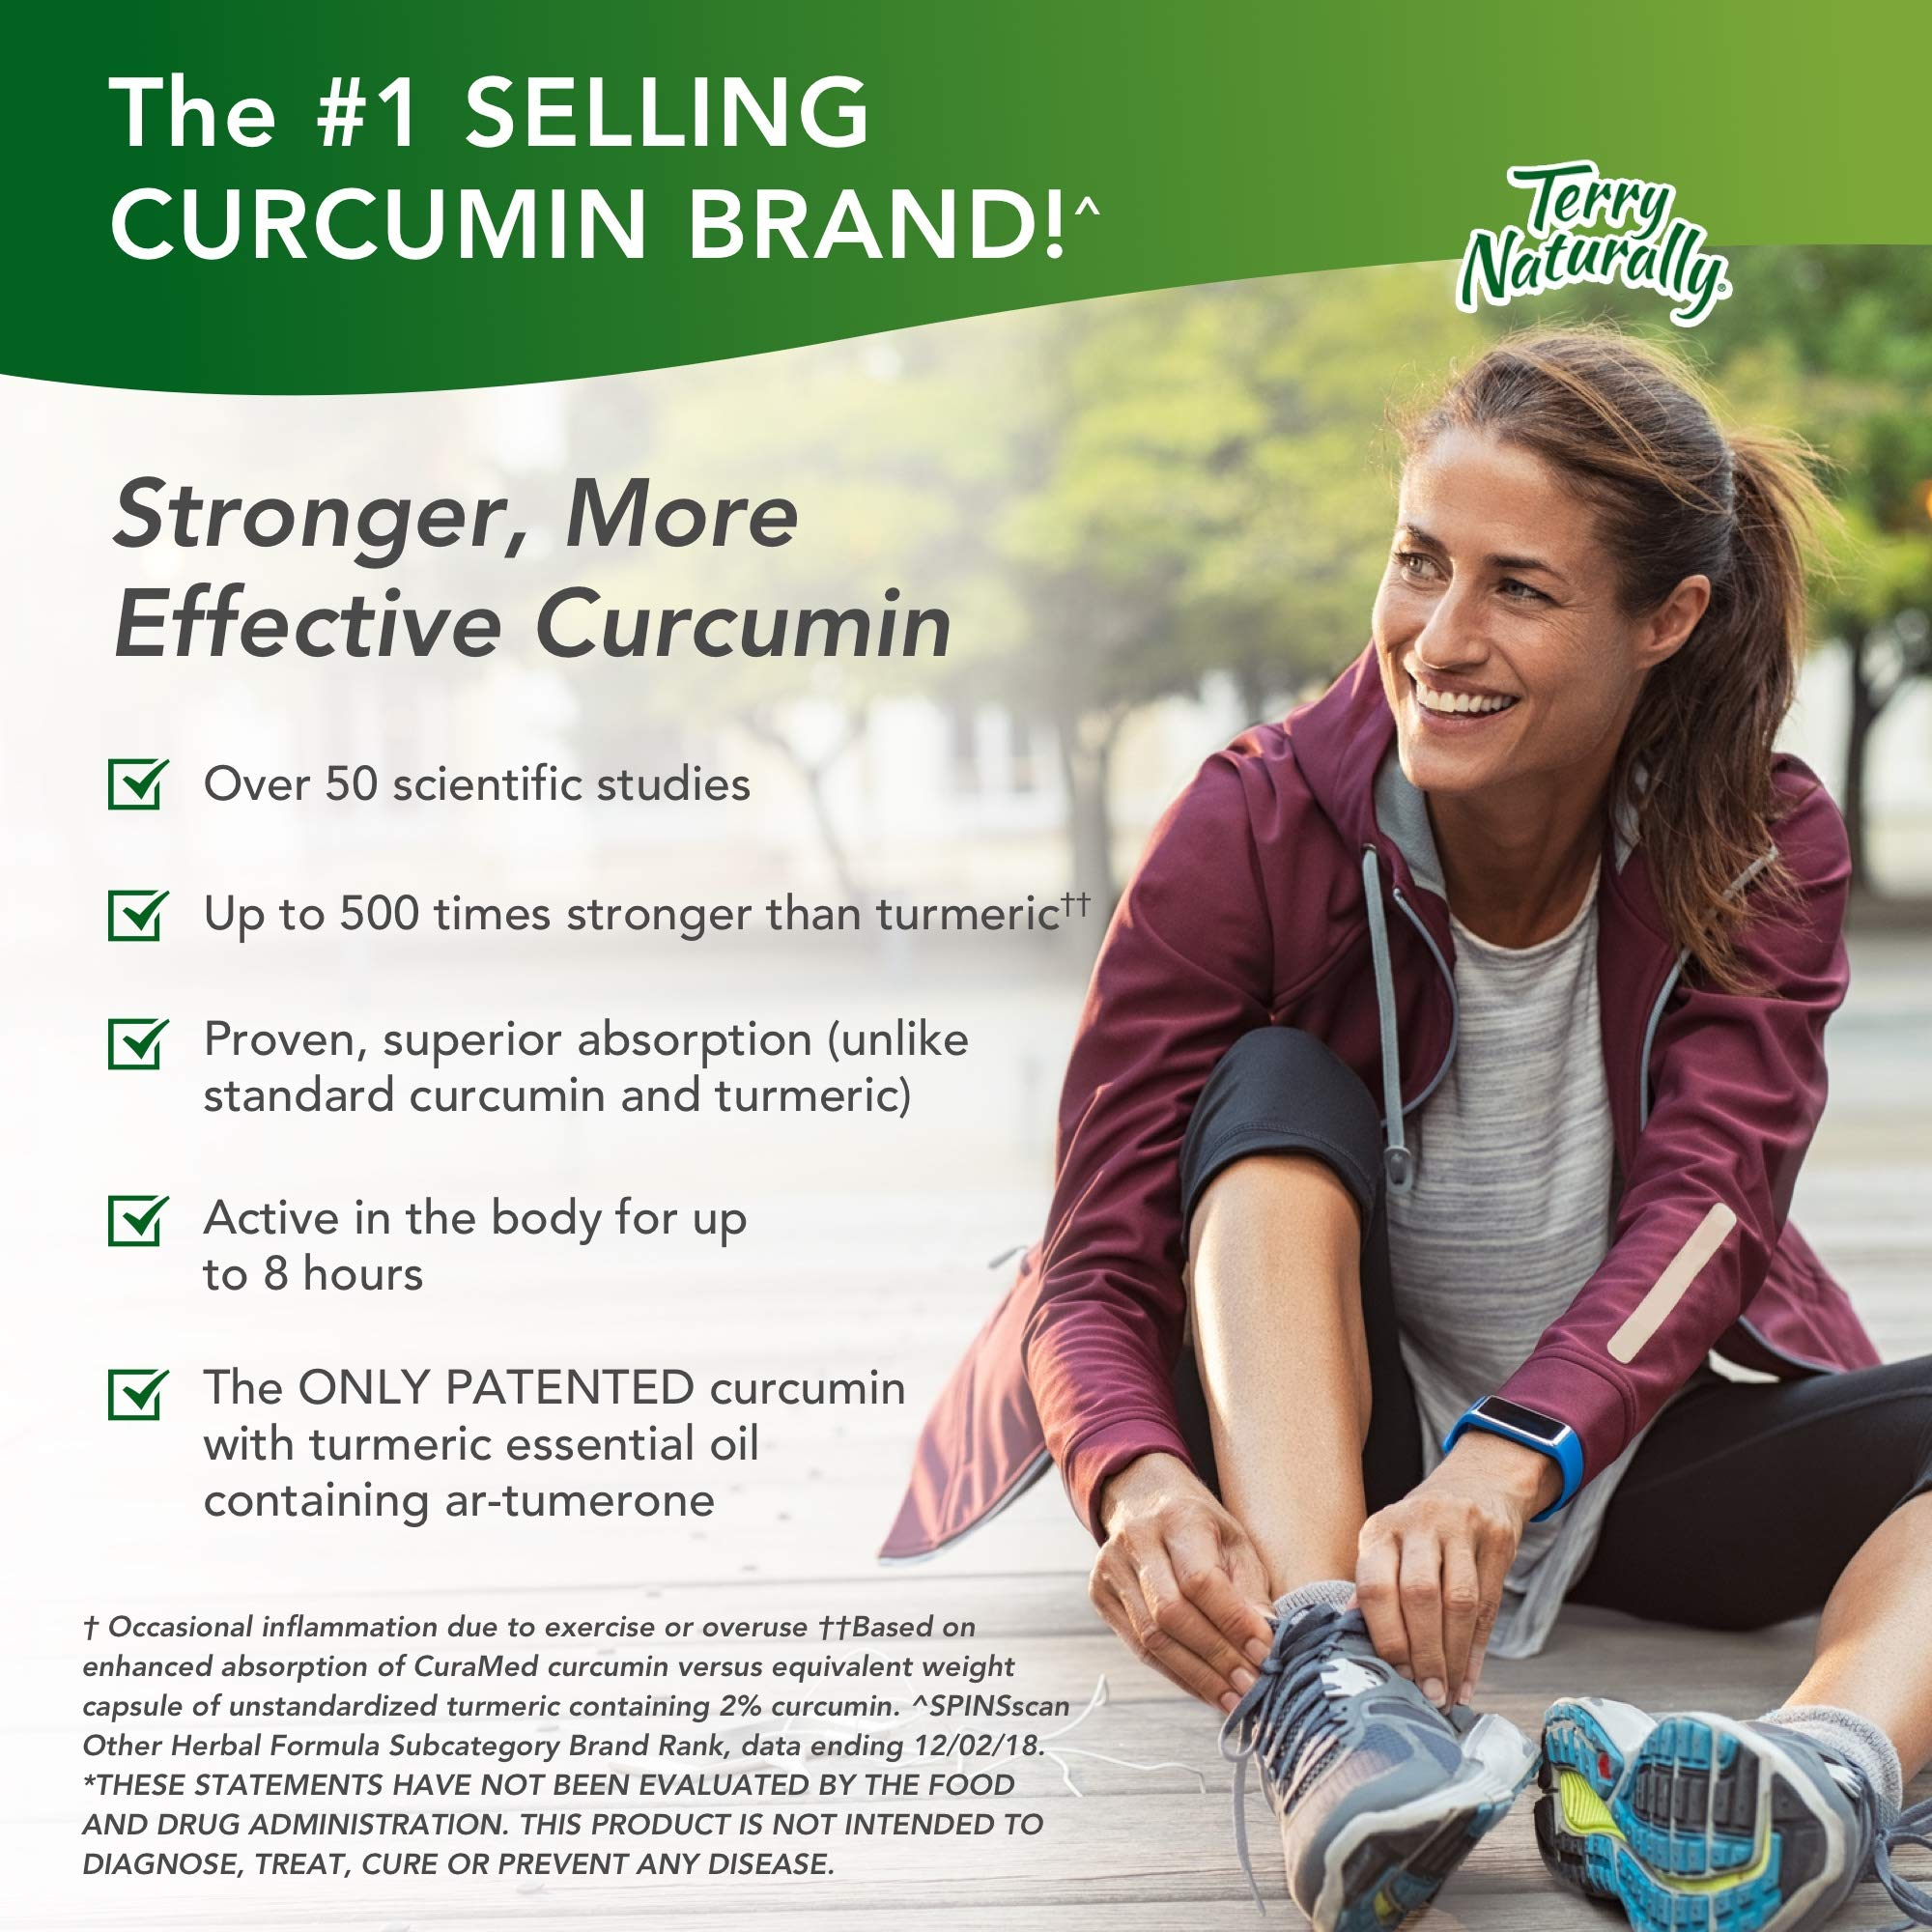 Terry Naturally CuraMed 750 mg - 60 Softgels - Superior Absorption BCM-95 Curcumin Supplement, Promotes Healthy Inflammation Response - Non-GMO, Gluten-Free, Halal - 60 Servings by Terry Naturally (Image #7)